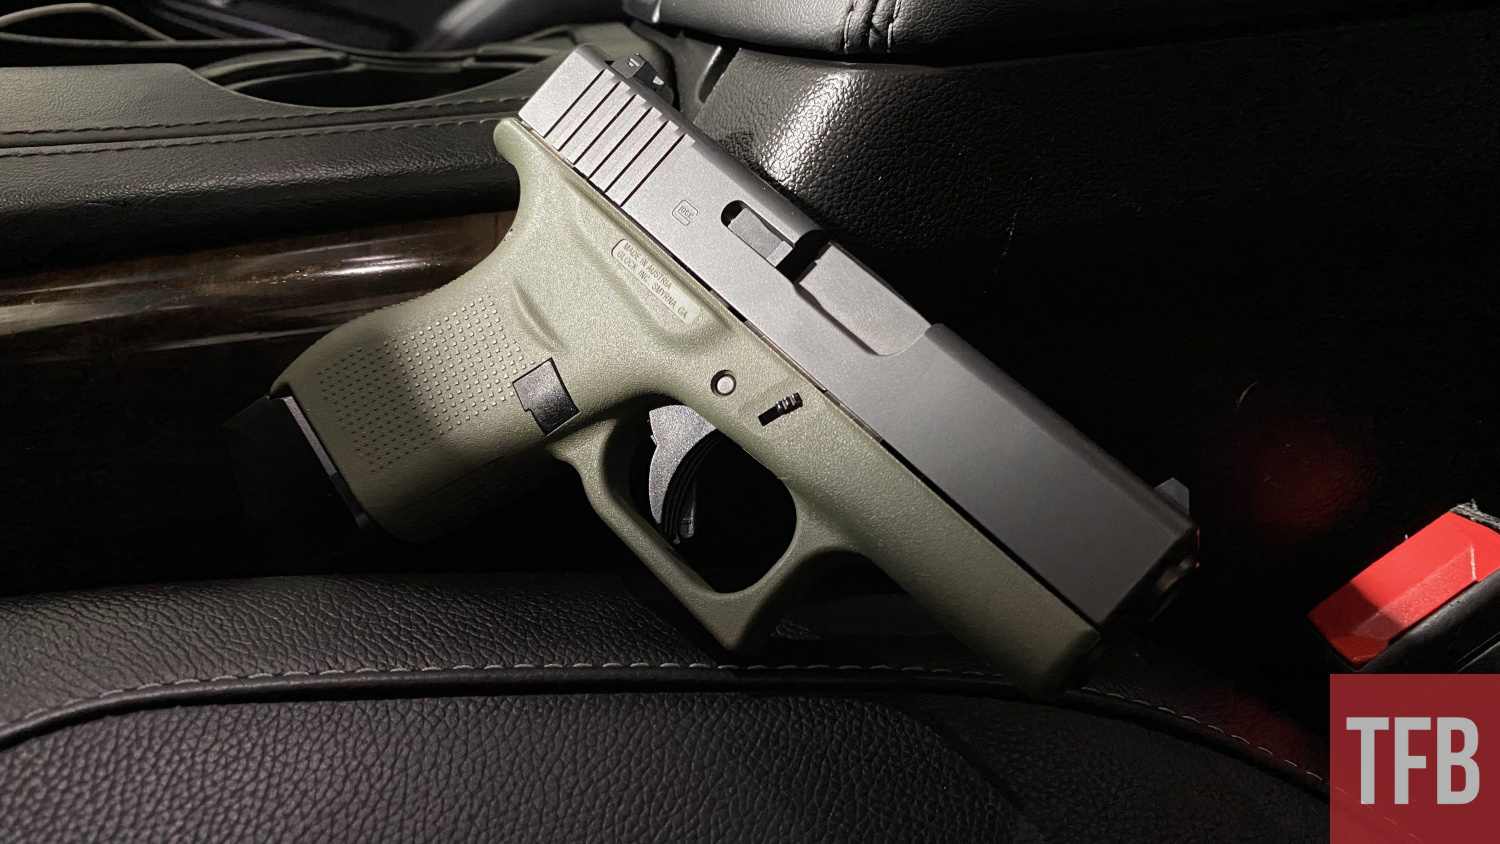 Concealed Carry Corner: Pros And Cons of Constitutional Carry